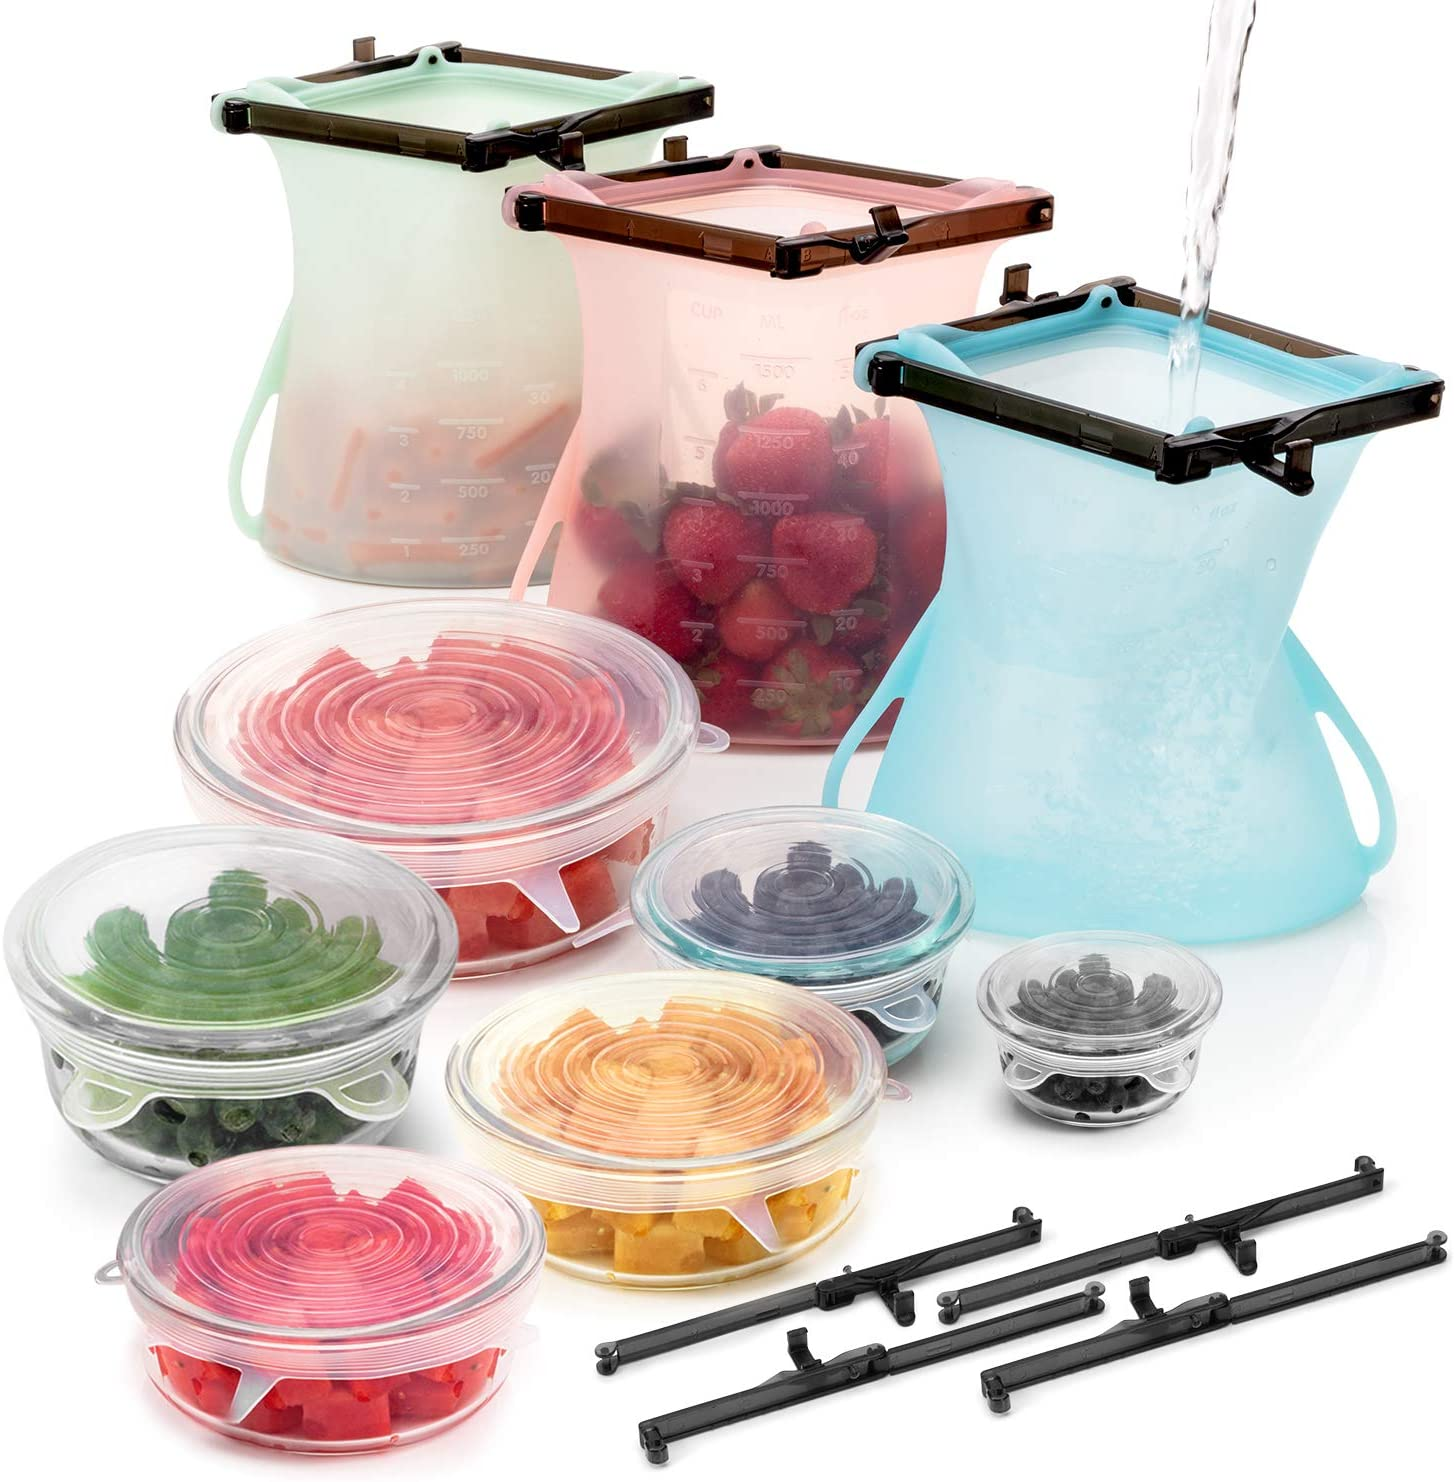 Reusable Silicone Bags for Food Storage - 3 x 1.5L (51oz) Silicone Food Storage Bags + 6 Stretch Lids Bowl Covers to Lock in Freshness + 2 Bonus Sealer Clips - Freezer, Microwave & Dishwasher Safe